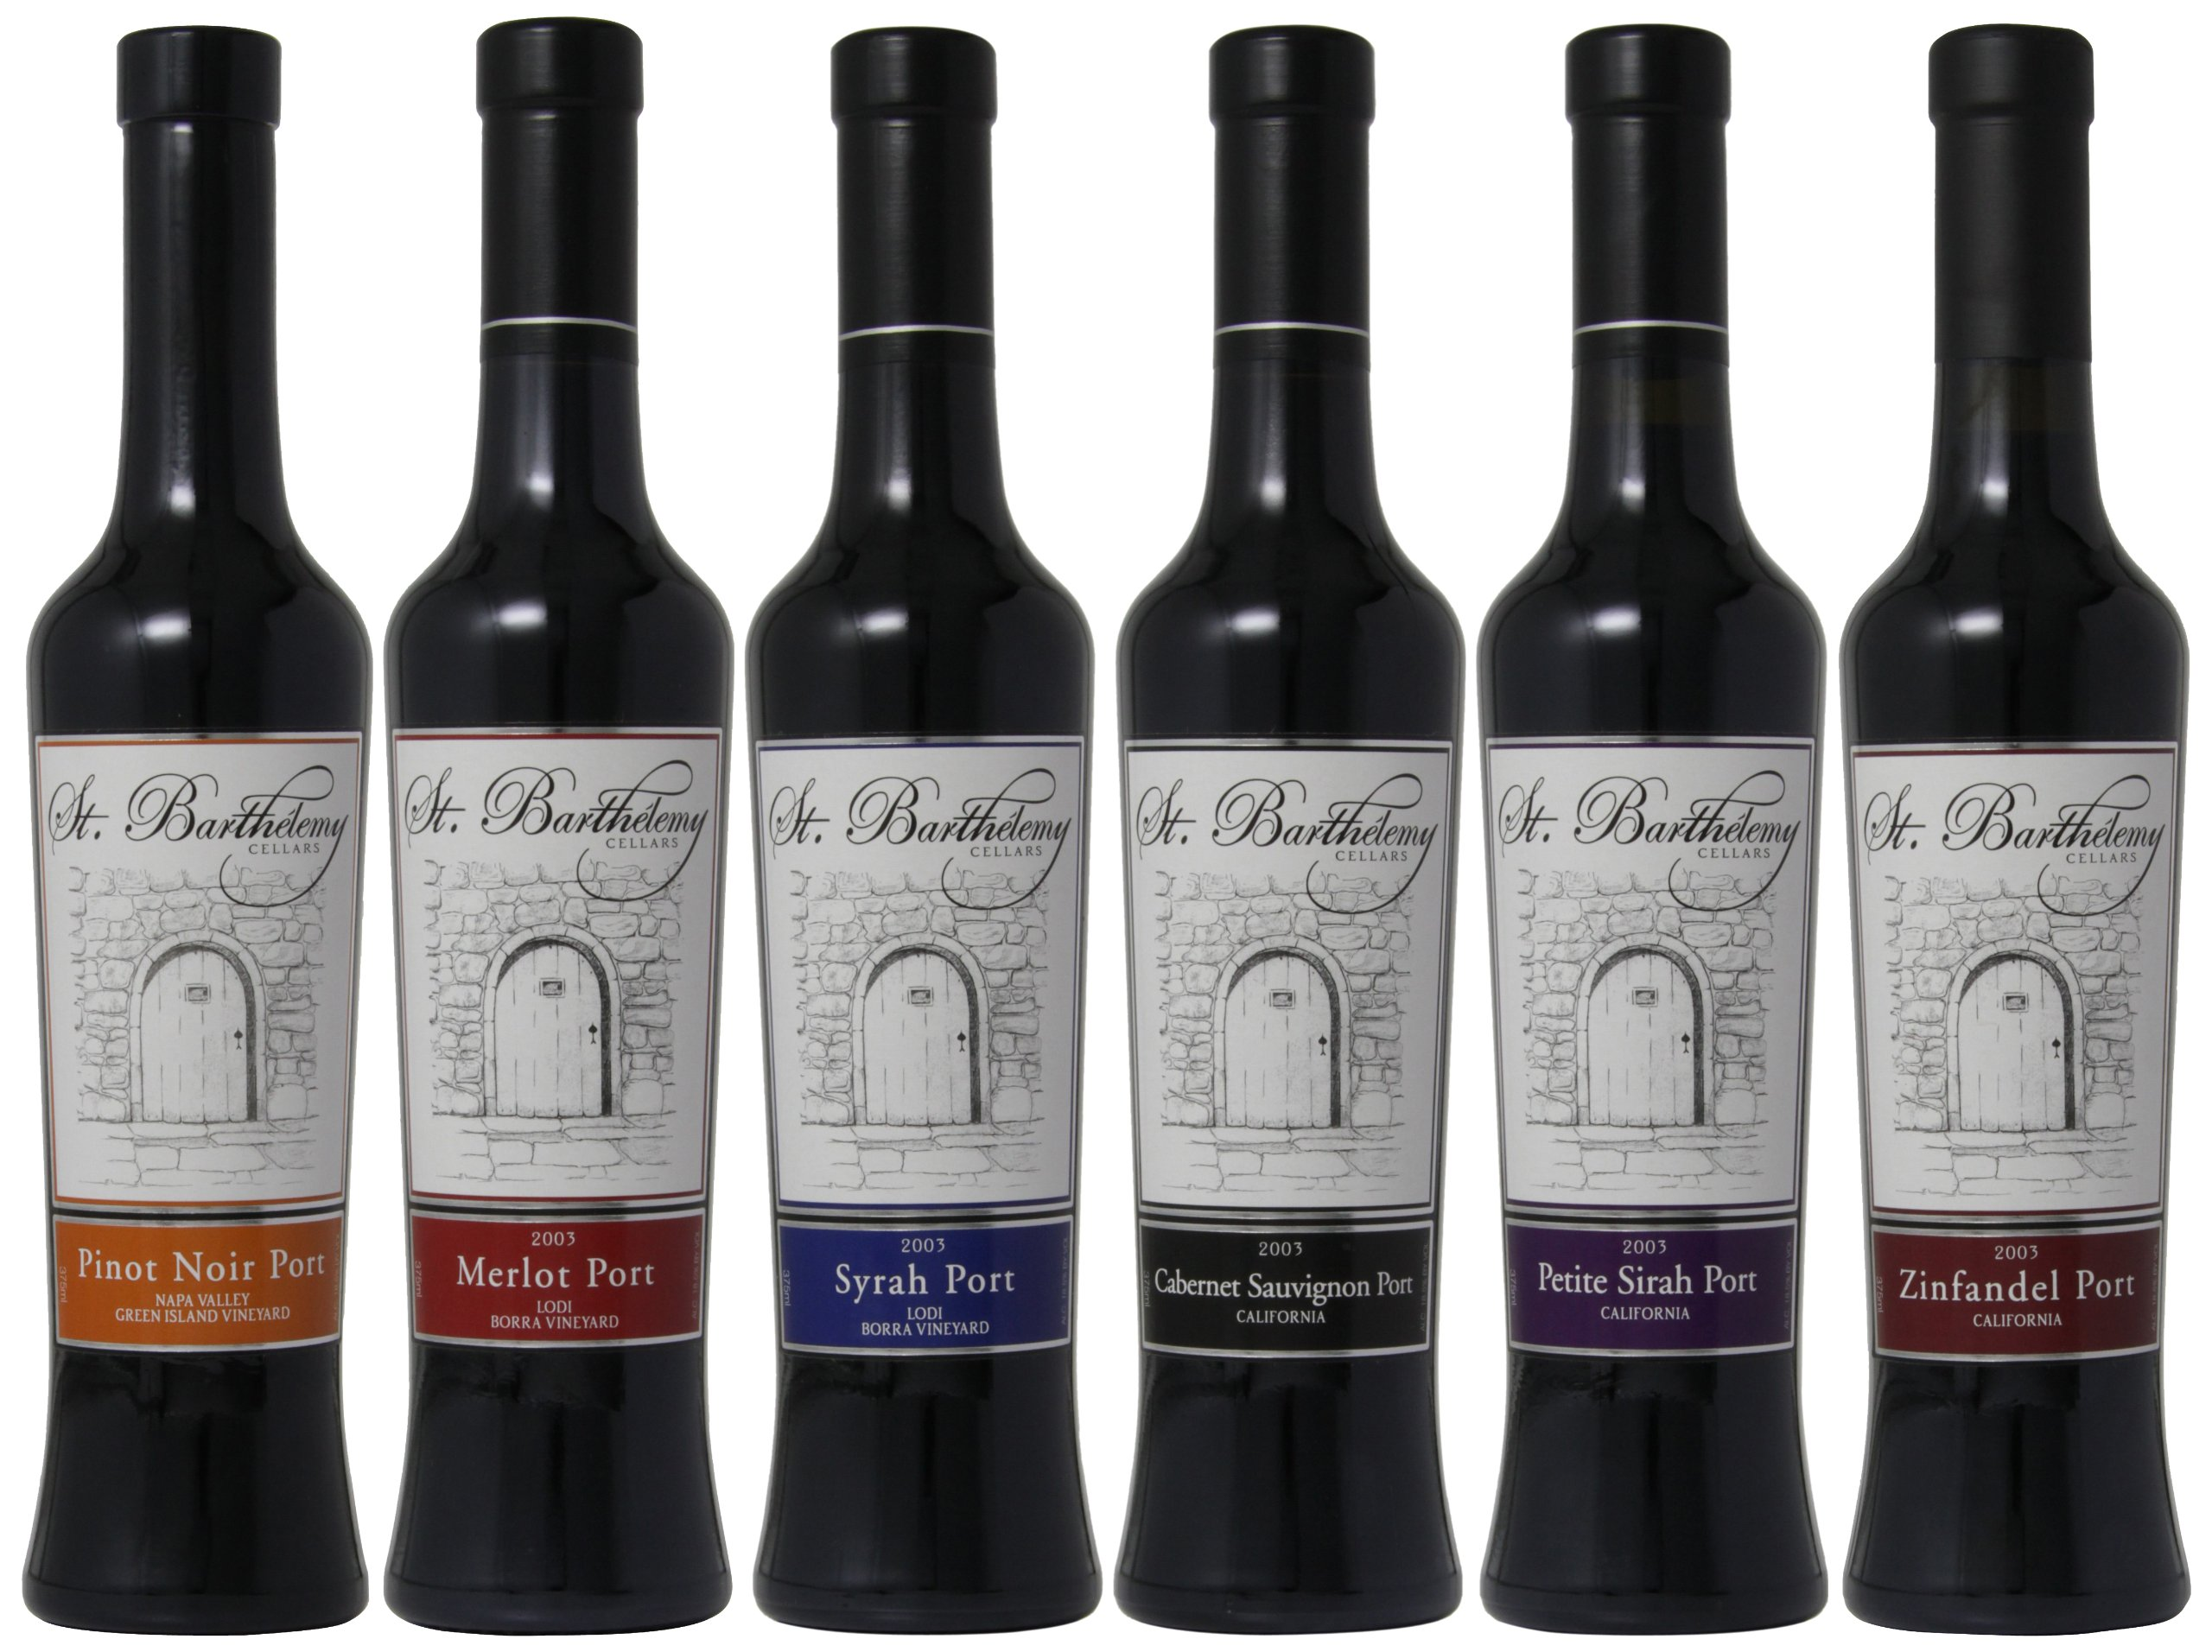 St. Barthelemy Cellars Wine Cellar Favorites Mixed Pack, 6 x 375 mL by St. Barthelemy Cellars